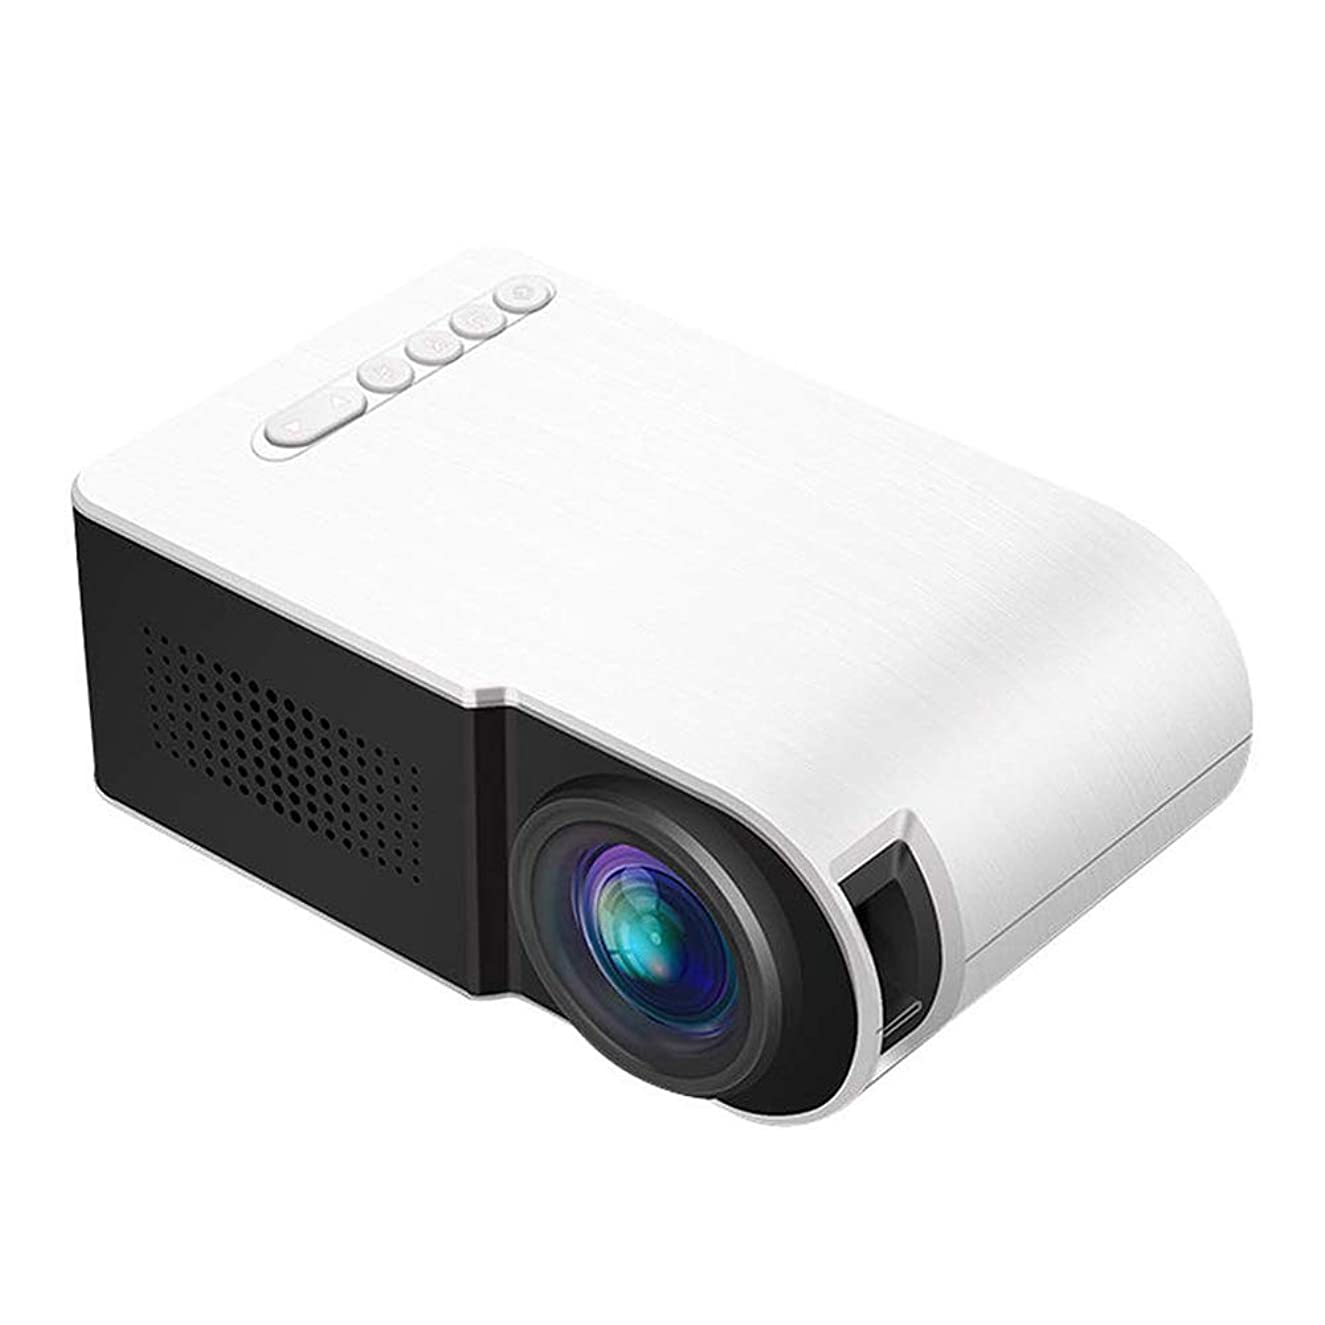 LED Mini Portable Projector Full HD Video Projectors, Support 1080P, Laptop, PC, TV, SD Card, for Movies, Sports and Video Games